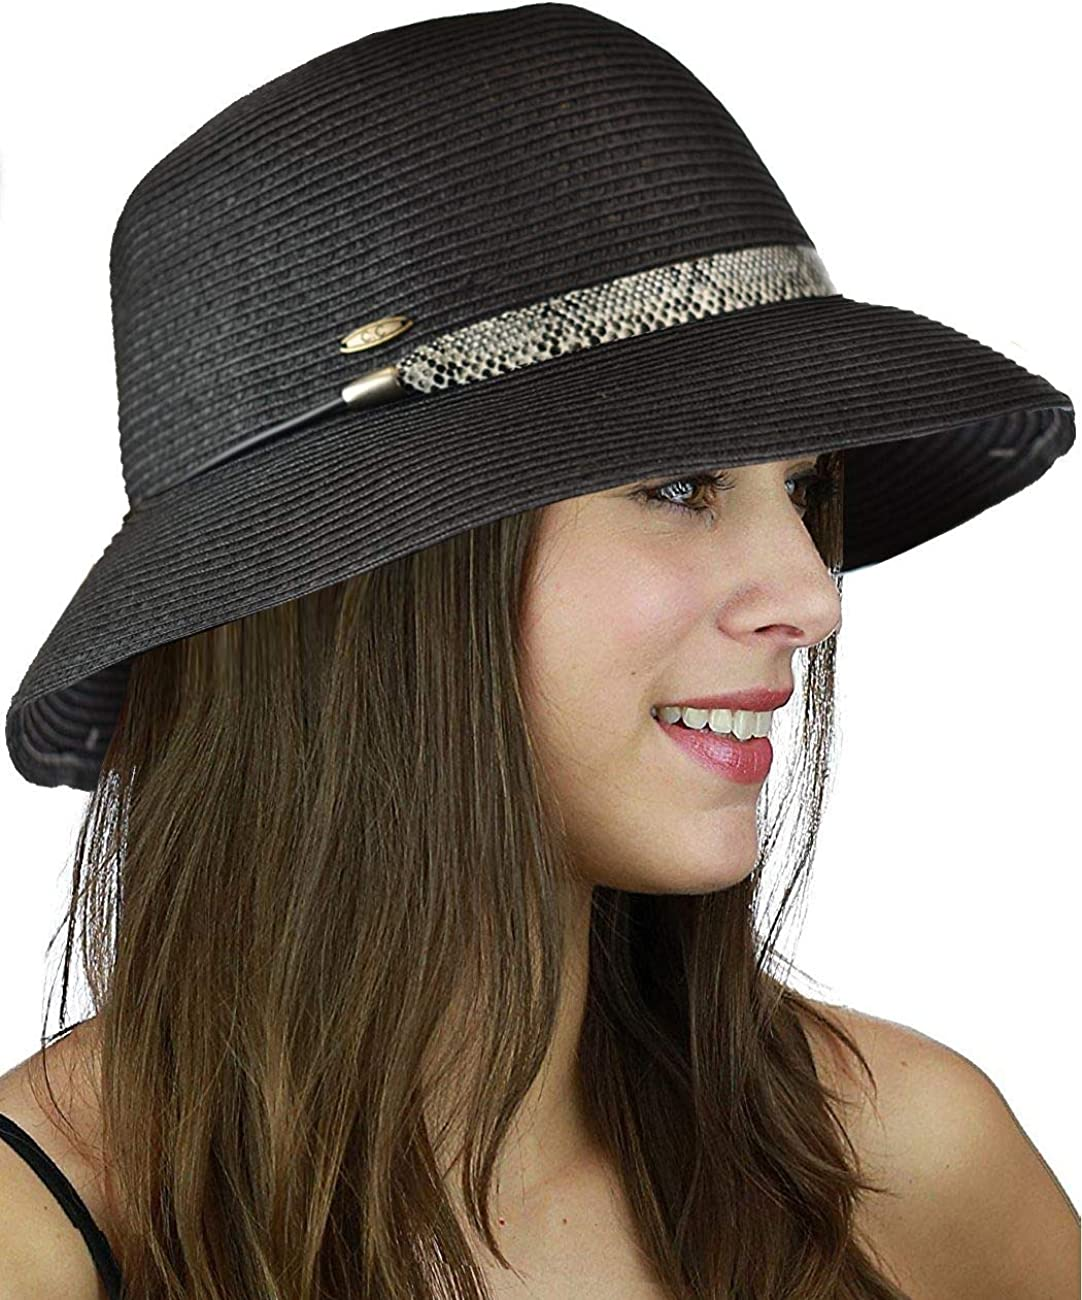 Credence C.C Women's Paper Woven Cloche Japan Maker New Bucket Color Hat Bow Band with